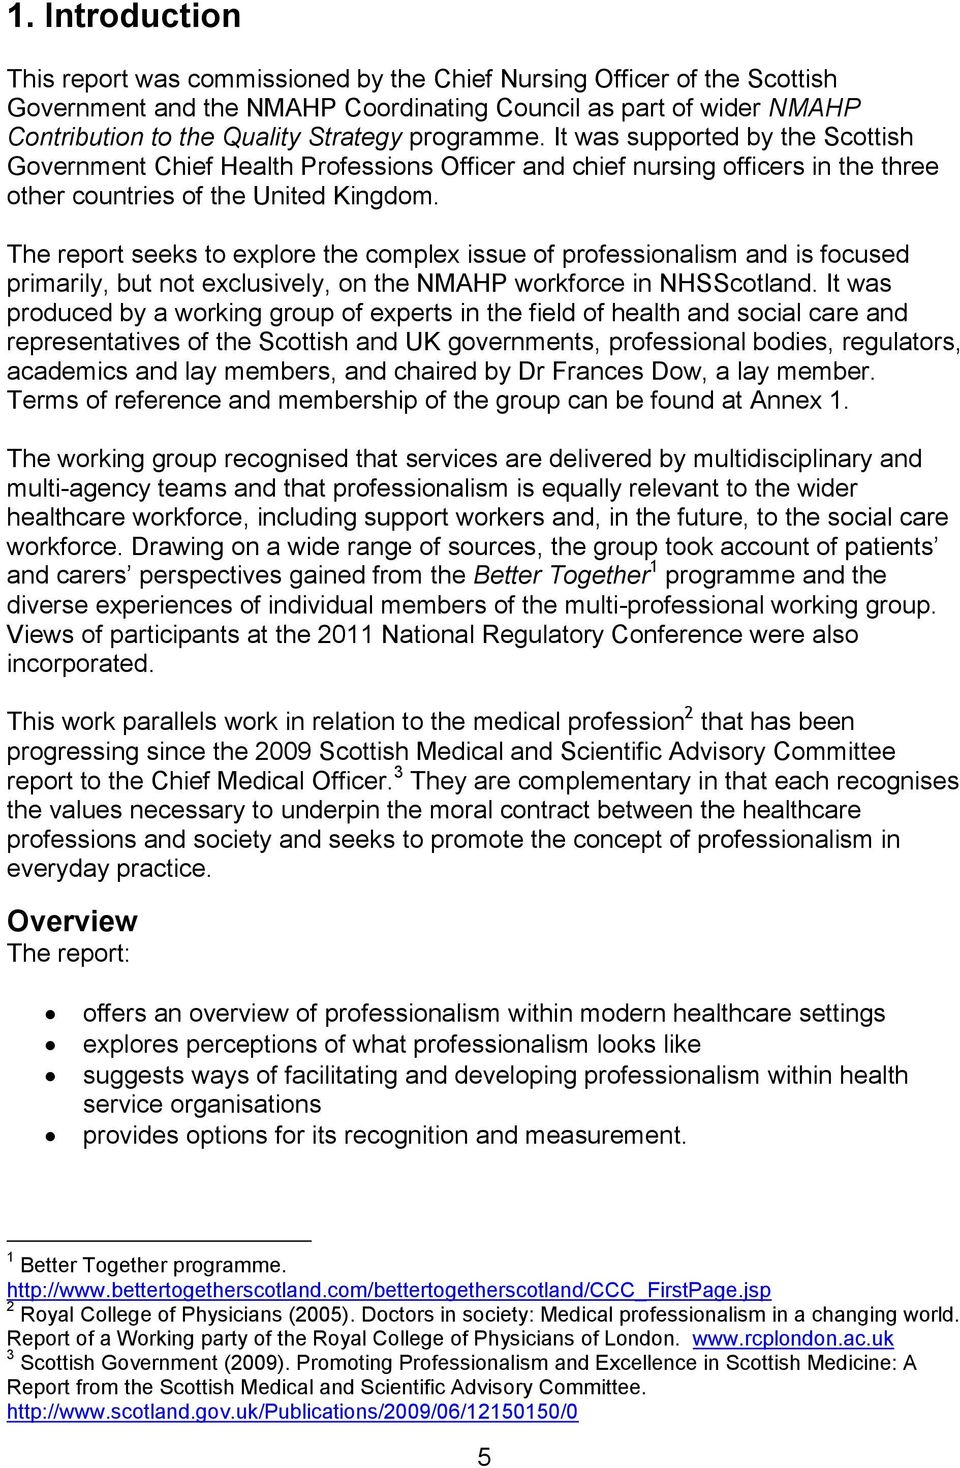 The report seeks to explore the complex issue of professionalism and is focused primarily, but not exclusively, on the NMAHP workforce in NHSScotland.